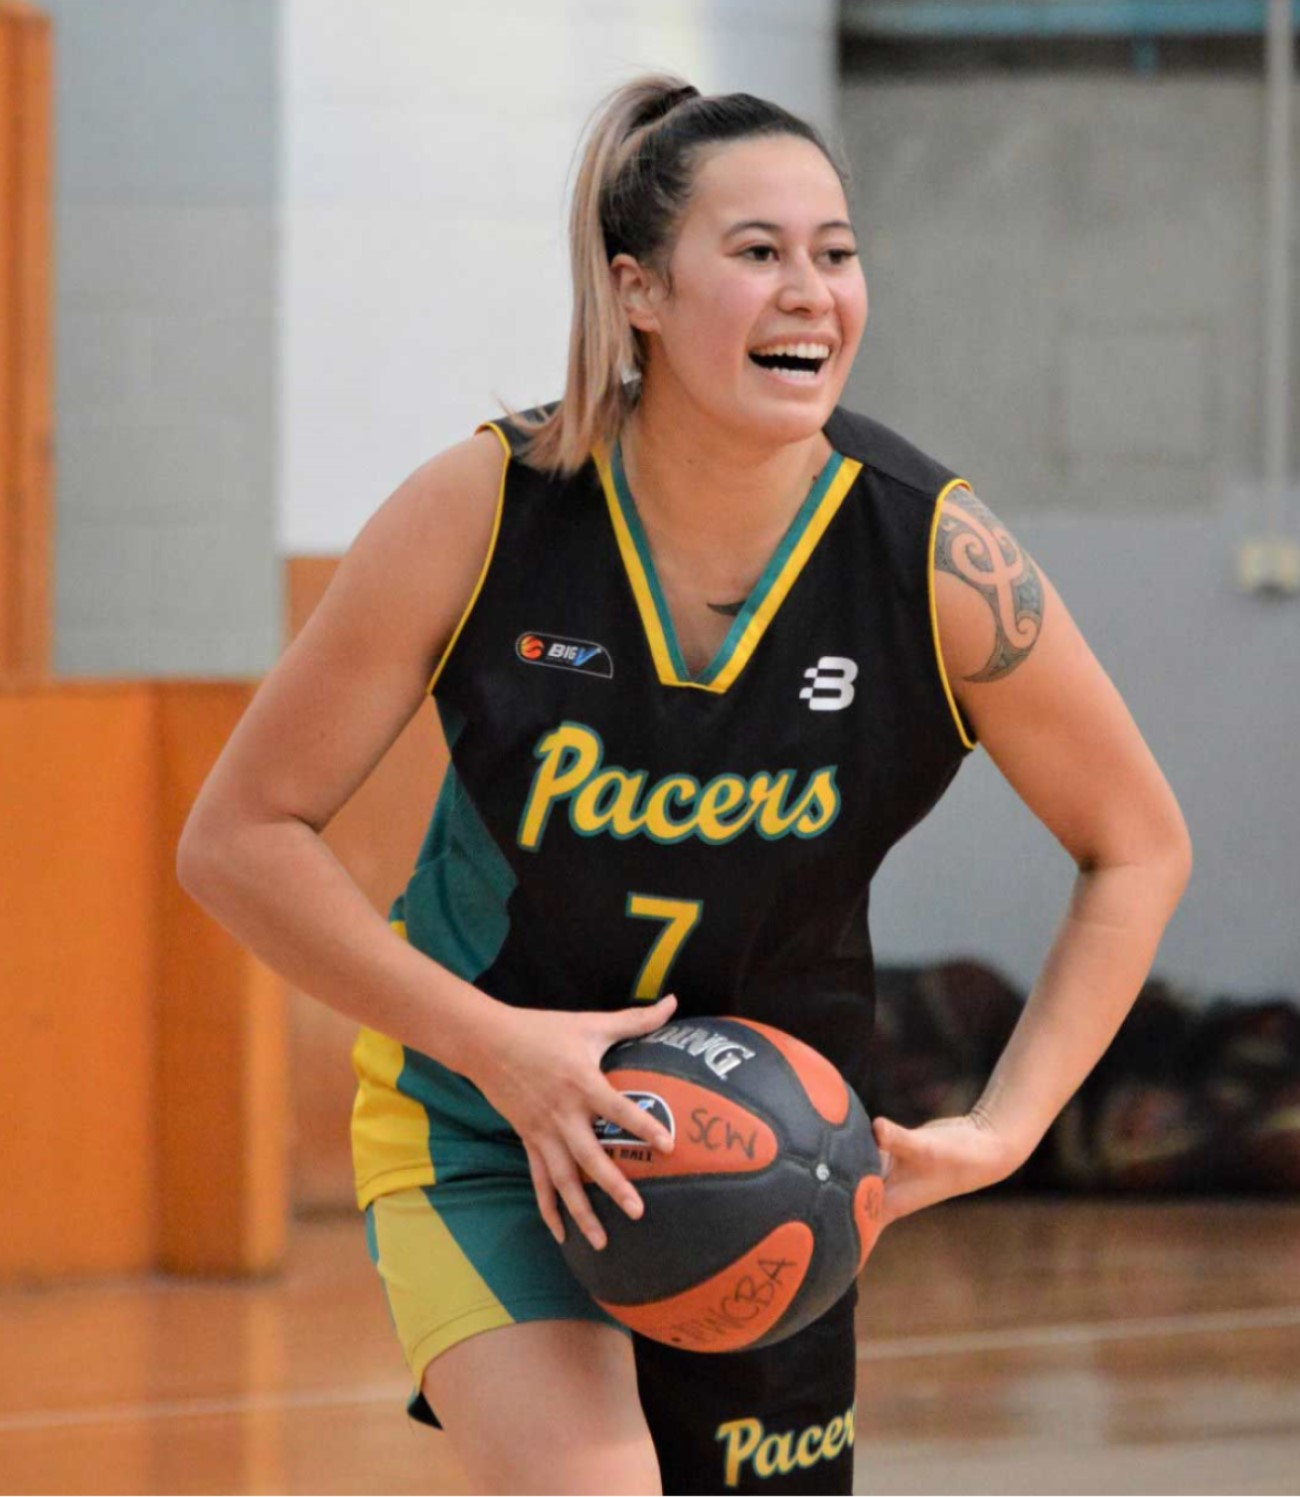 Q&A with Millie Waara from Whittlesea Pacers